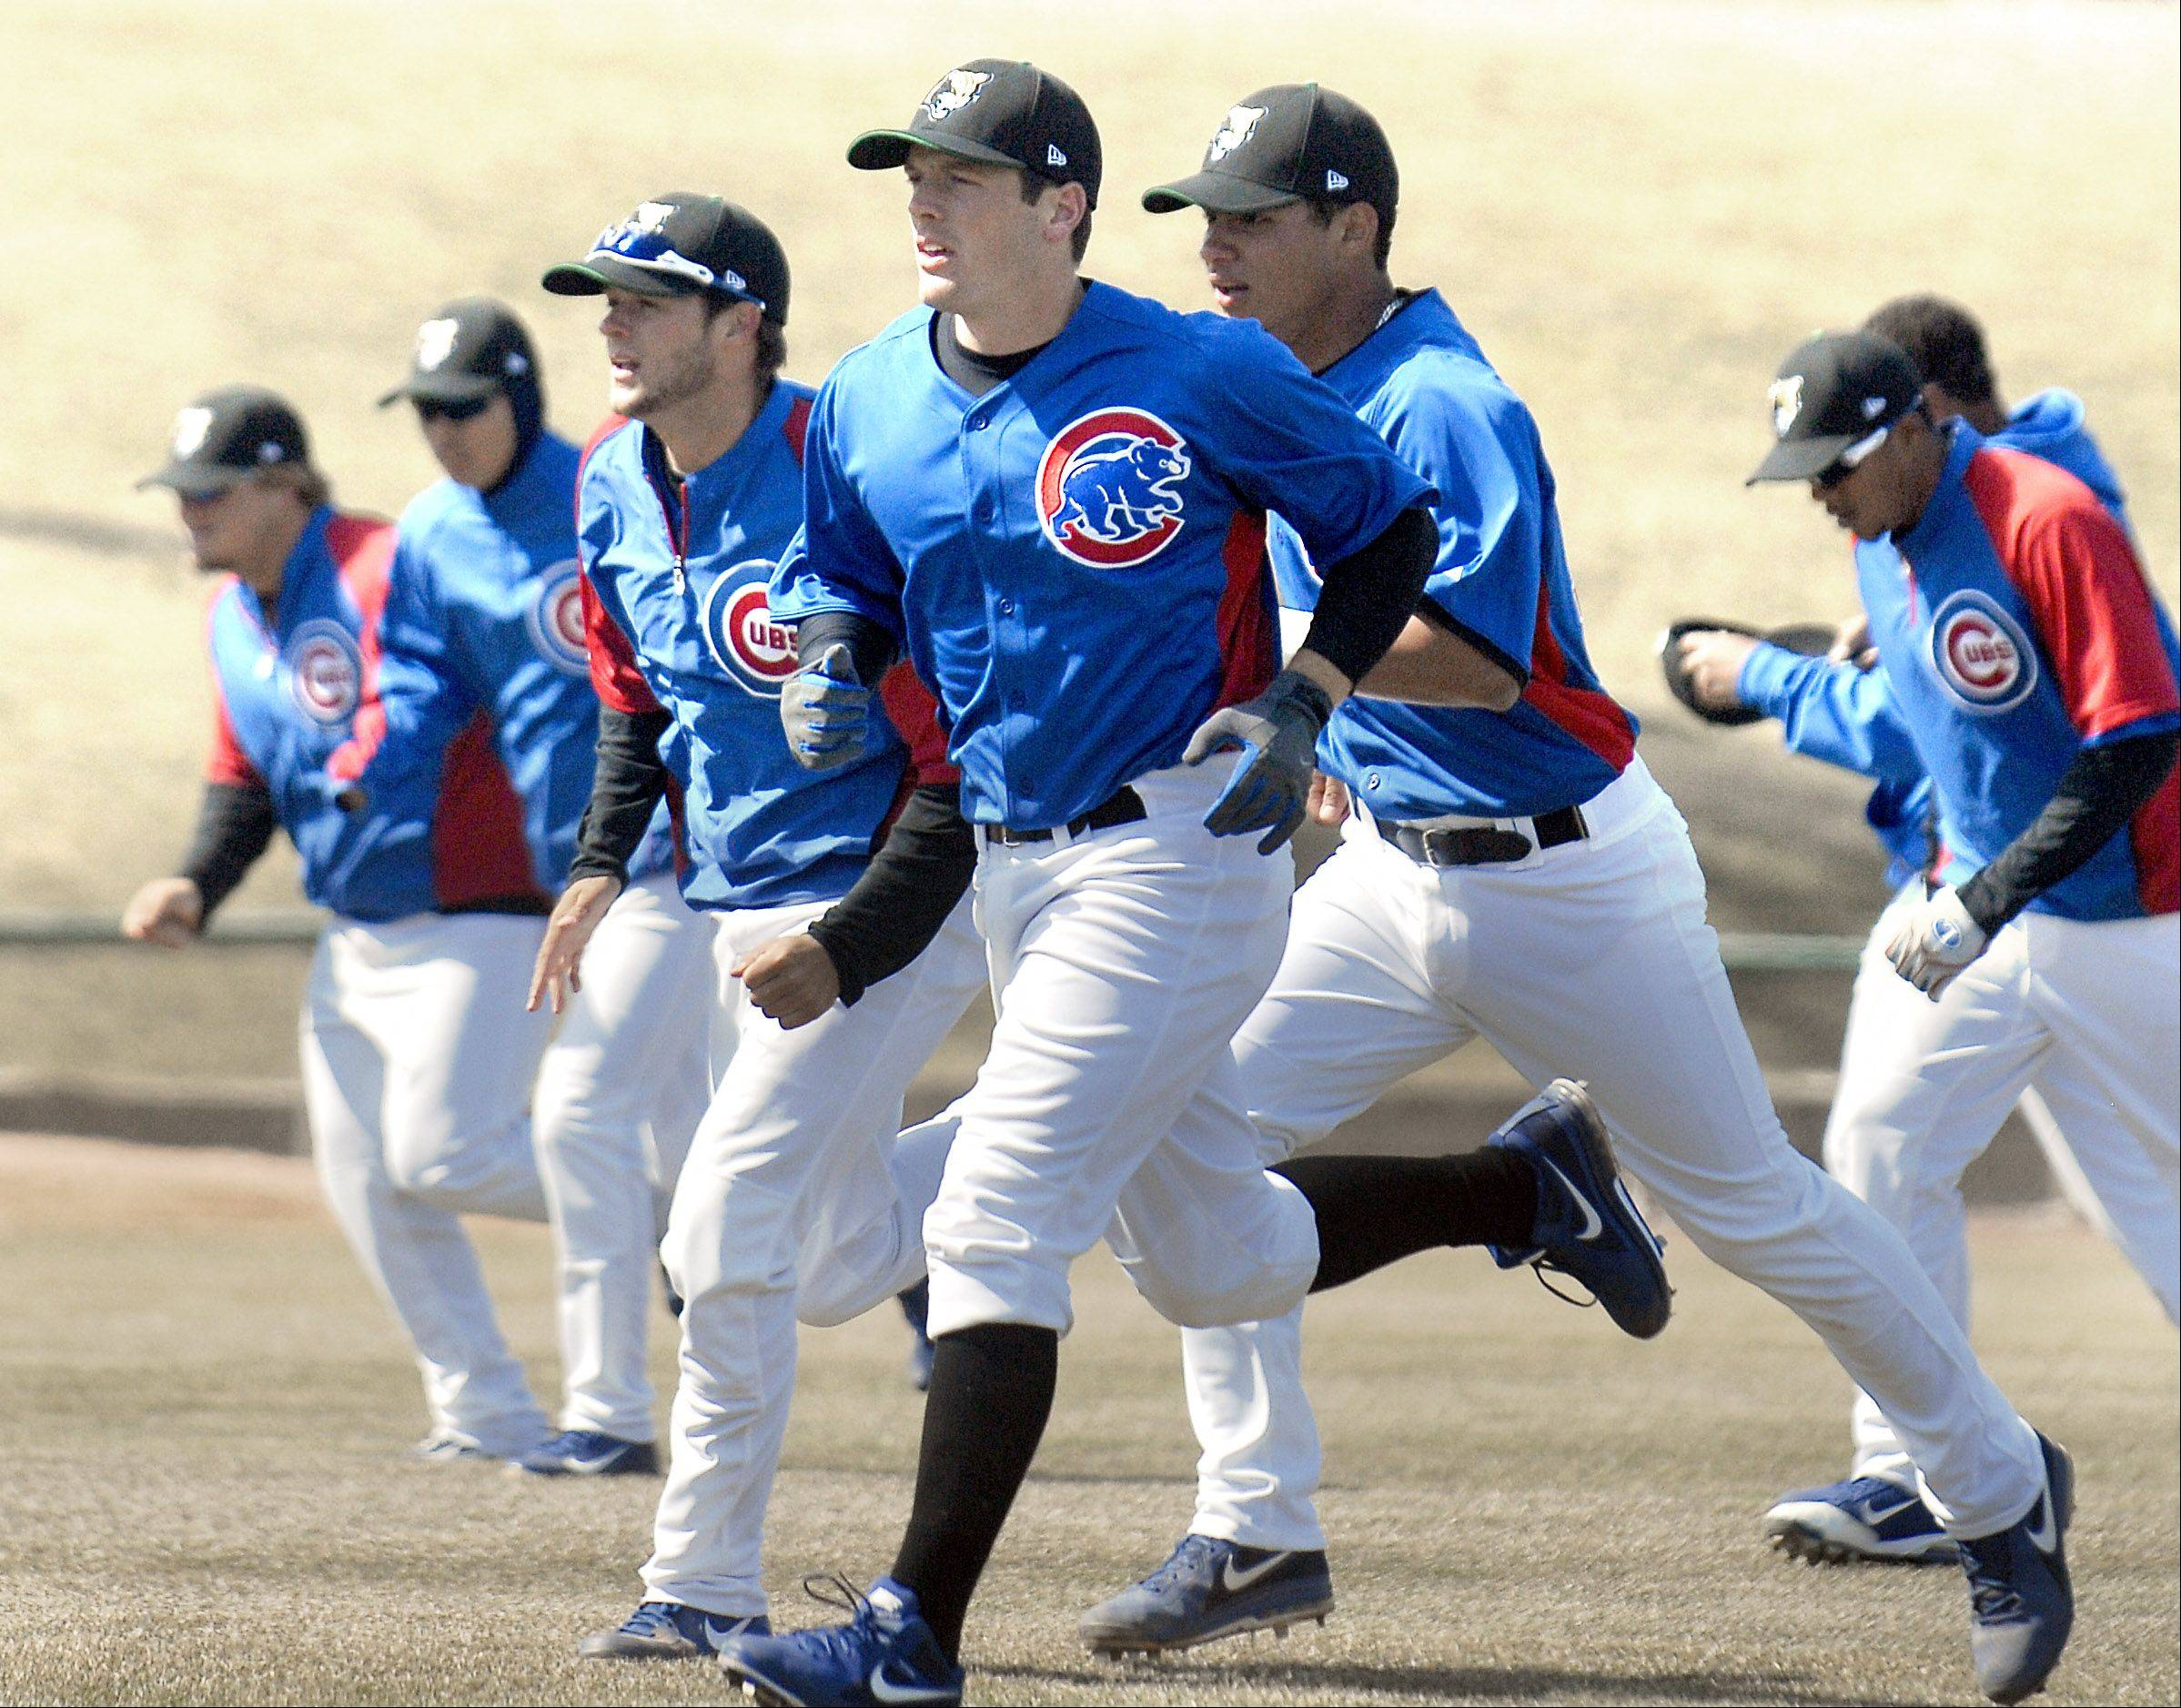 Chadd Krist, center, and Kane County Cougar teammates warm up during practice Tuesday. The Cougars, who are affiliated with the Chicago Cubs, wore their Cubs jerseys during practice.